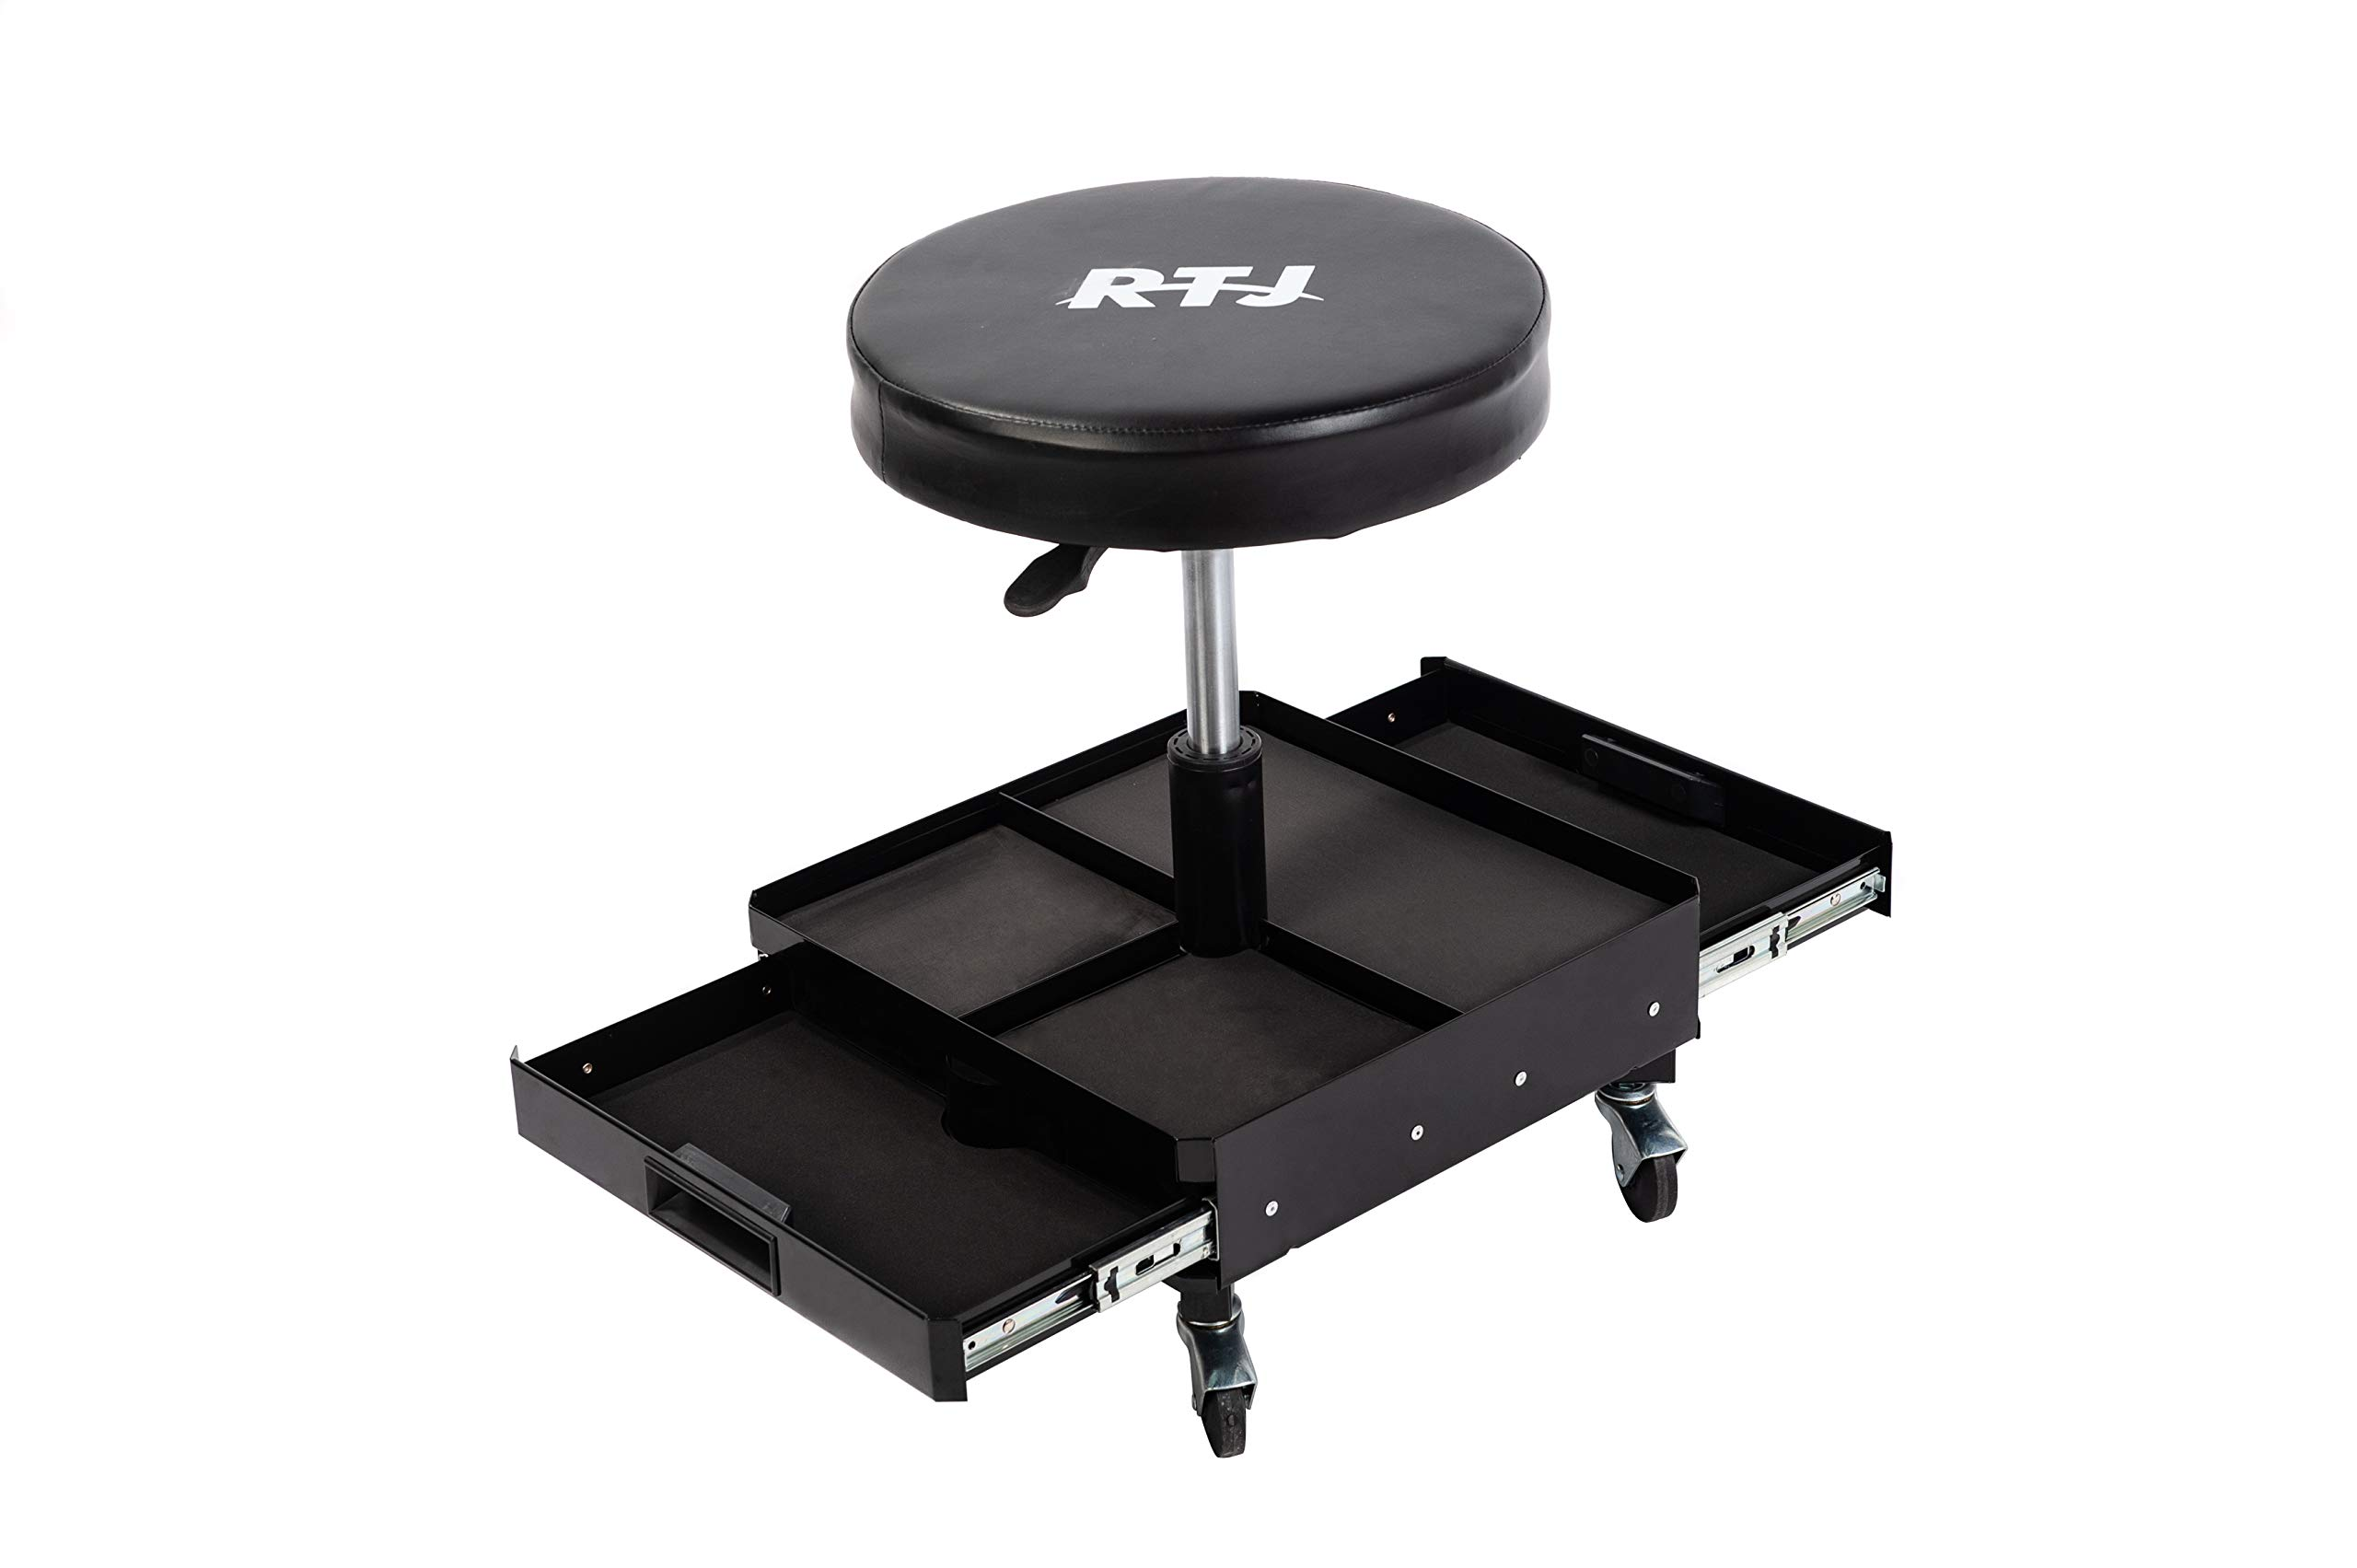 RTJ 300 lbs Capacity Pneumatic Mechanic Roller Seat Adjustable Rolling Stool -2 Drawers and Convenient Tool Tray, Black by RTJ